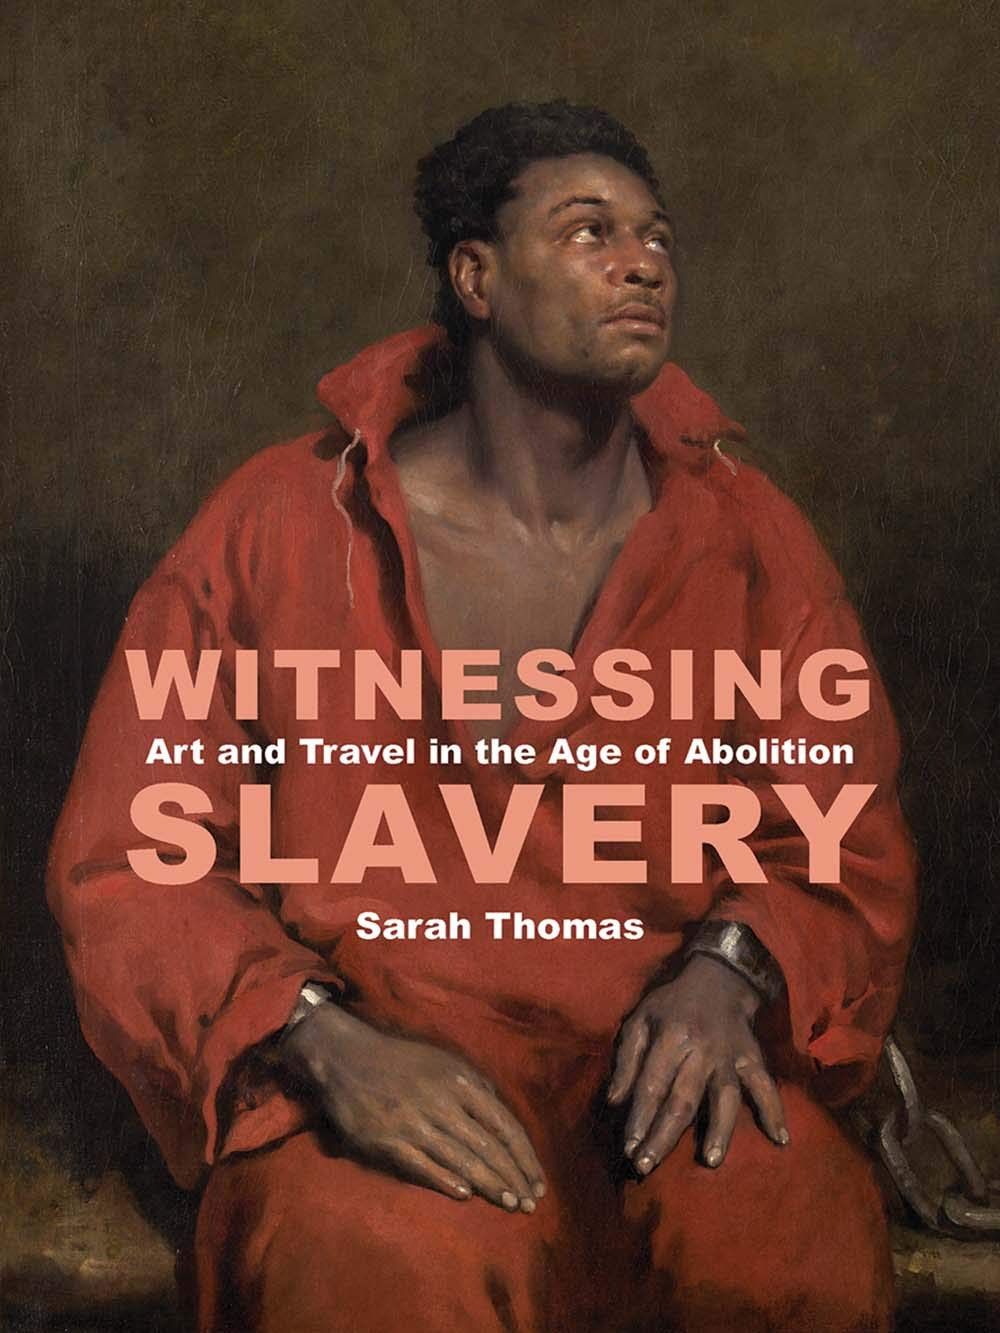 Witnessing Slavery: Art and Travel in the Age of Abolition (The Paul Mellon Centre for Studies in British Art) by Paul Mellon Centre BA